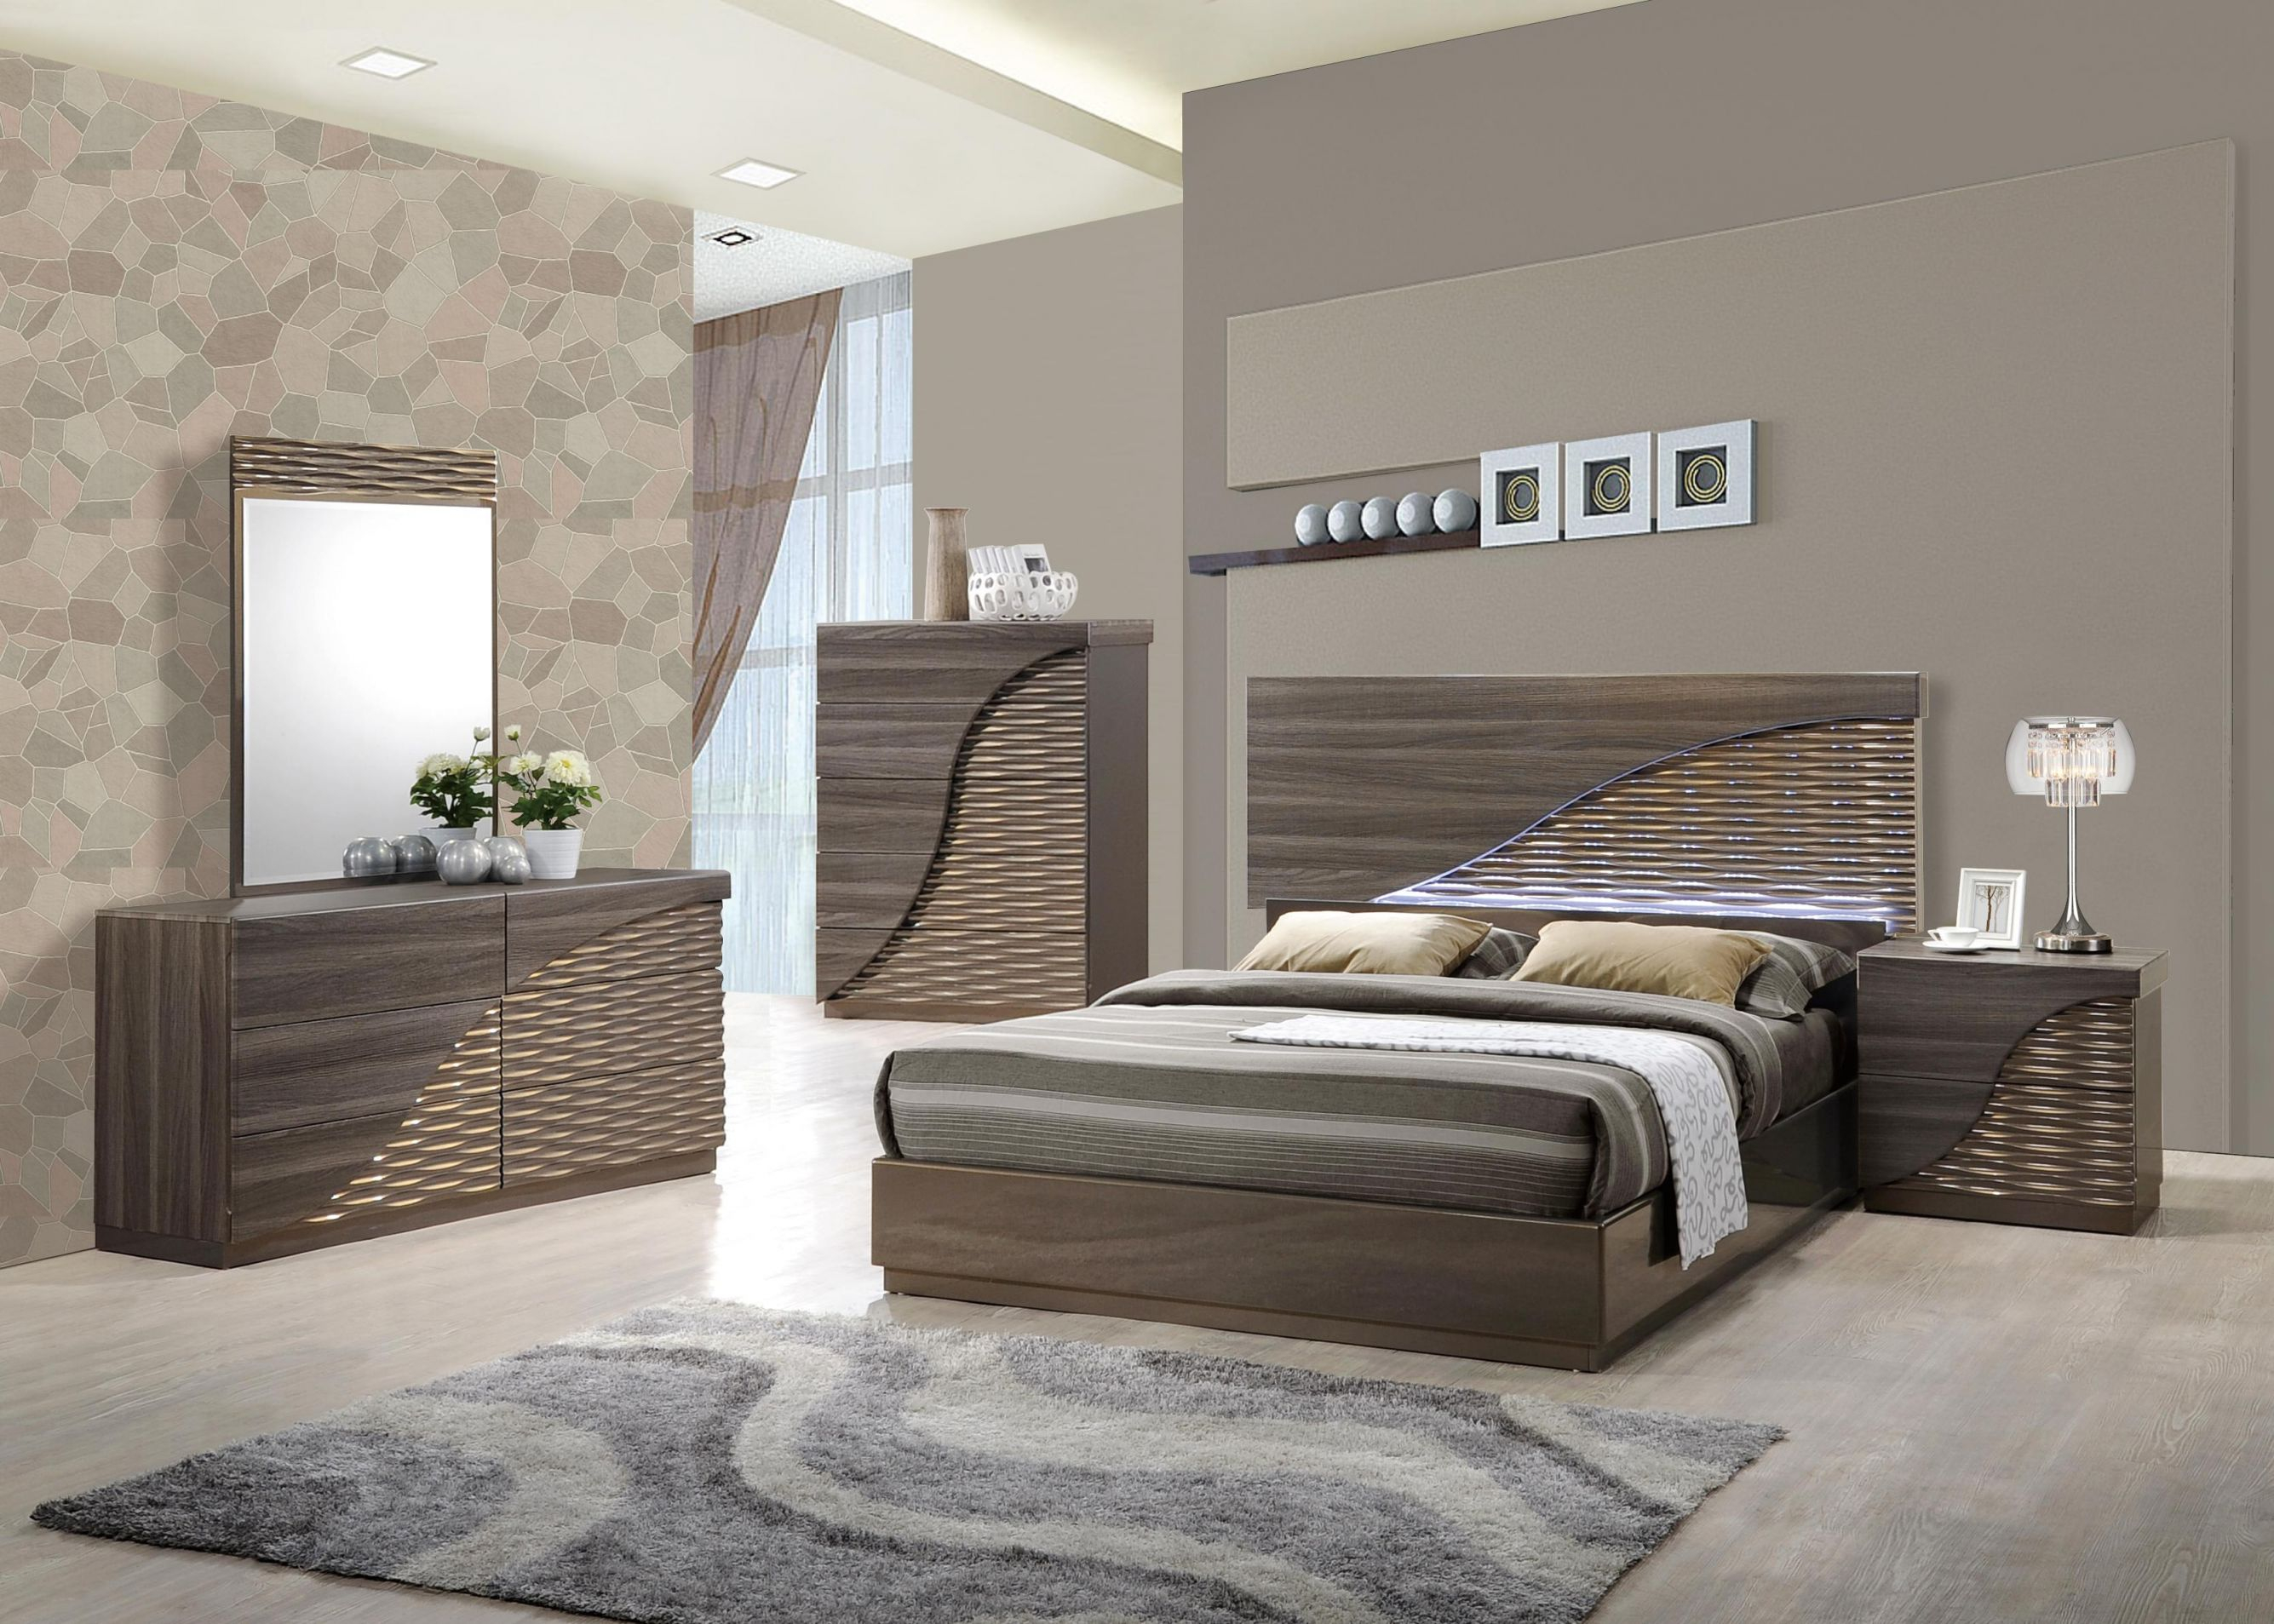 Contemporary Gold Zebra Led Bedroom Set Houston Texas Global-North for Elegant Contemporary Bedroom Sets